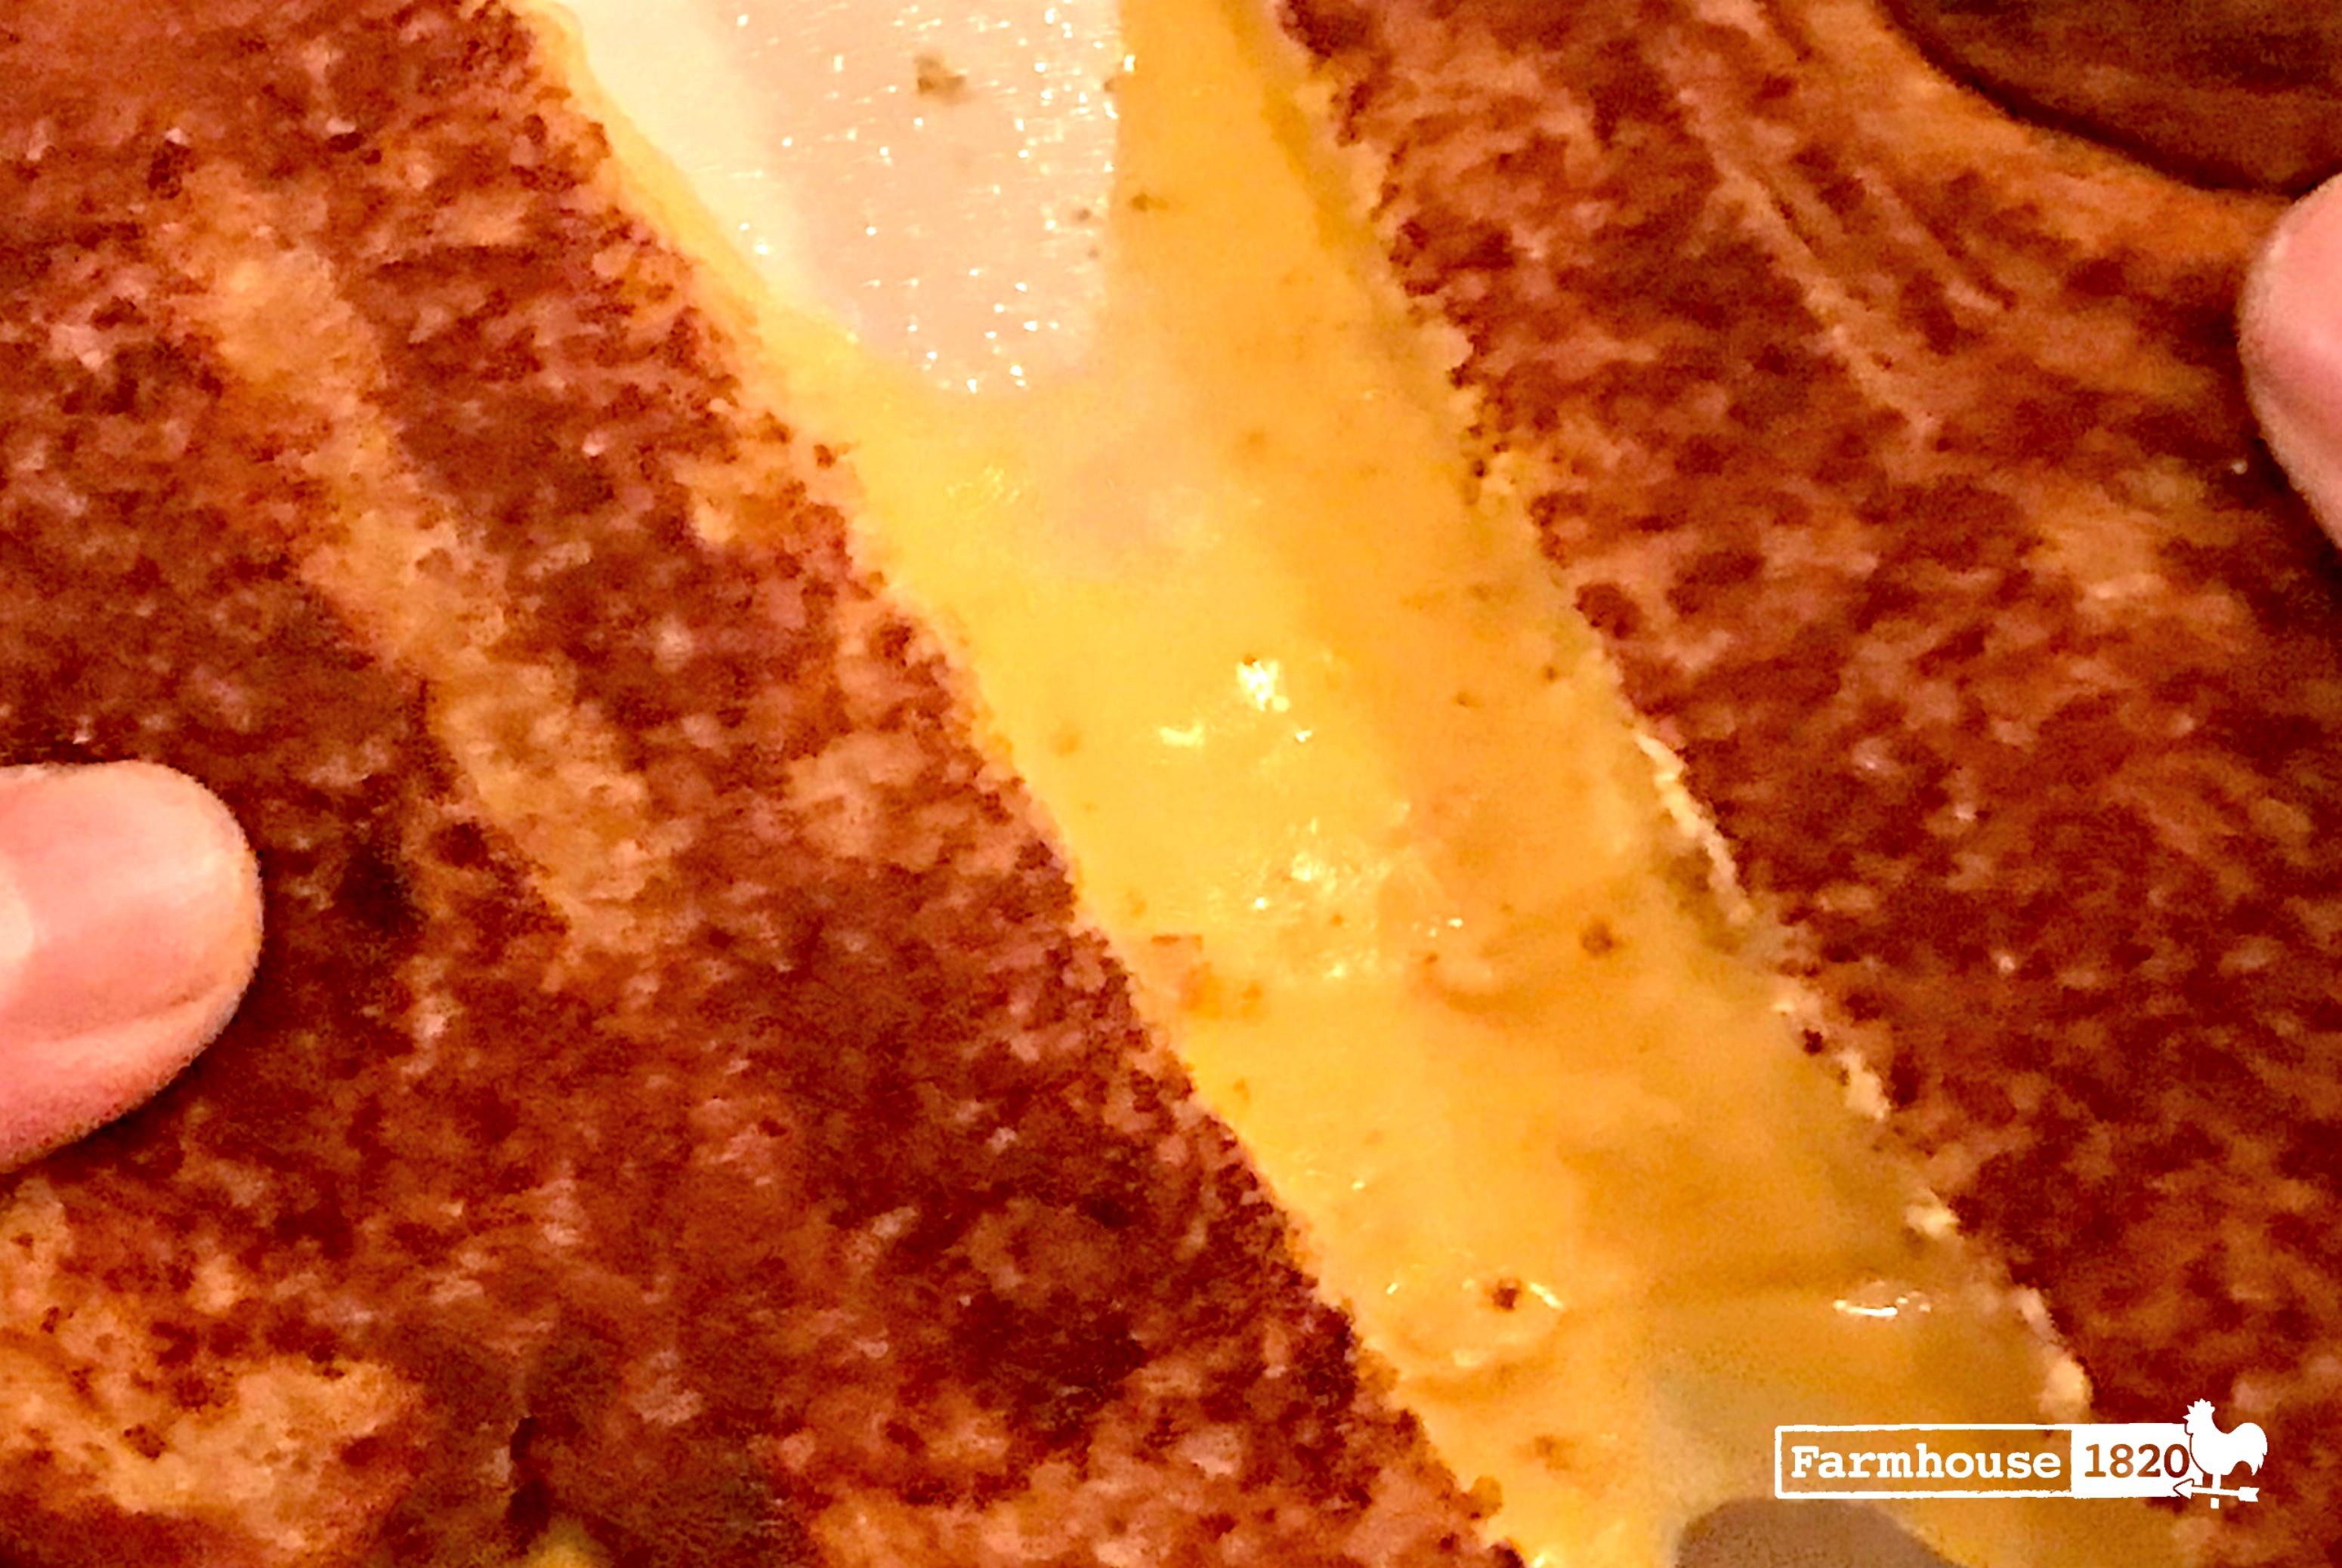 grilled cheese - gooey melted cheese is mouth-watering